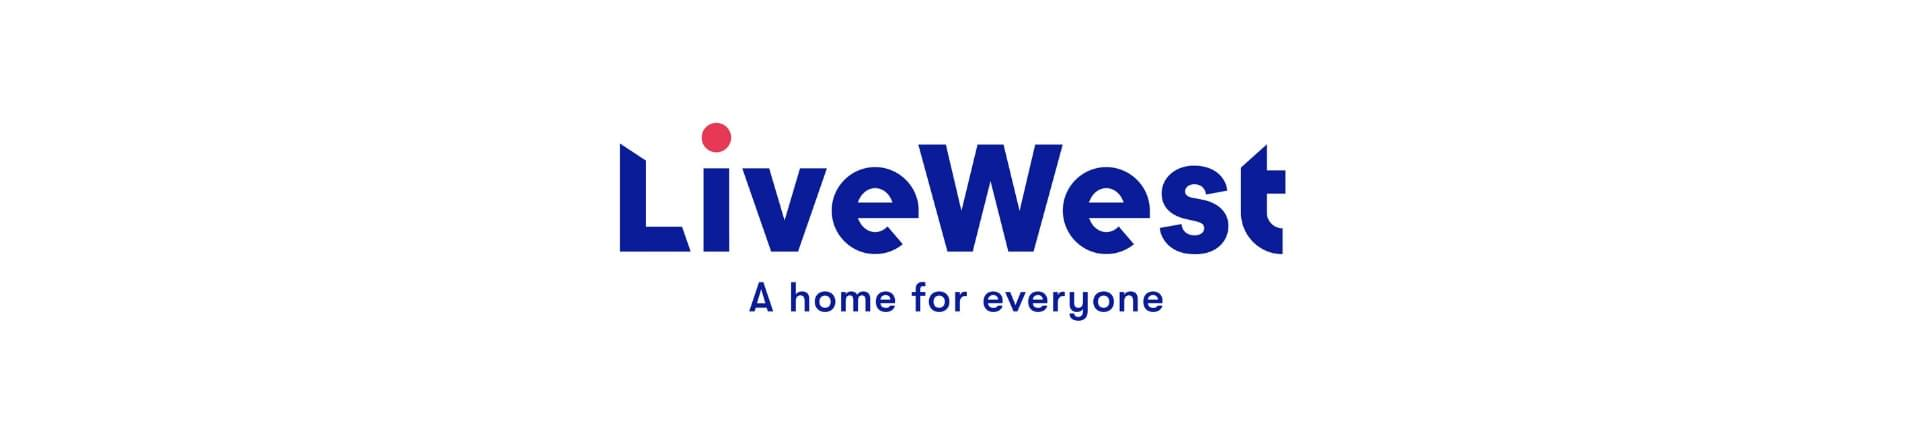 Image of the words LiveWest A Home For Everyone